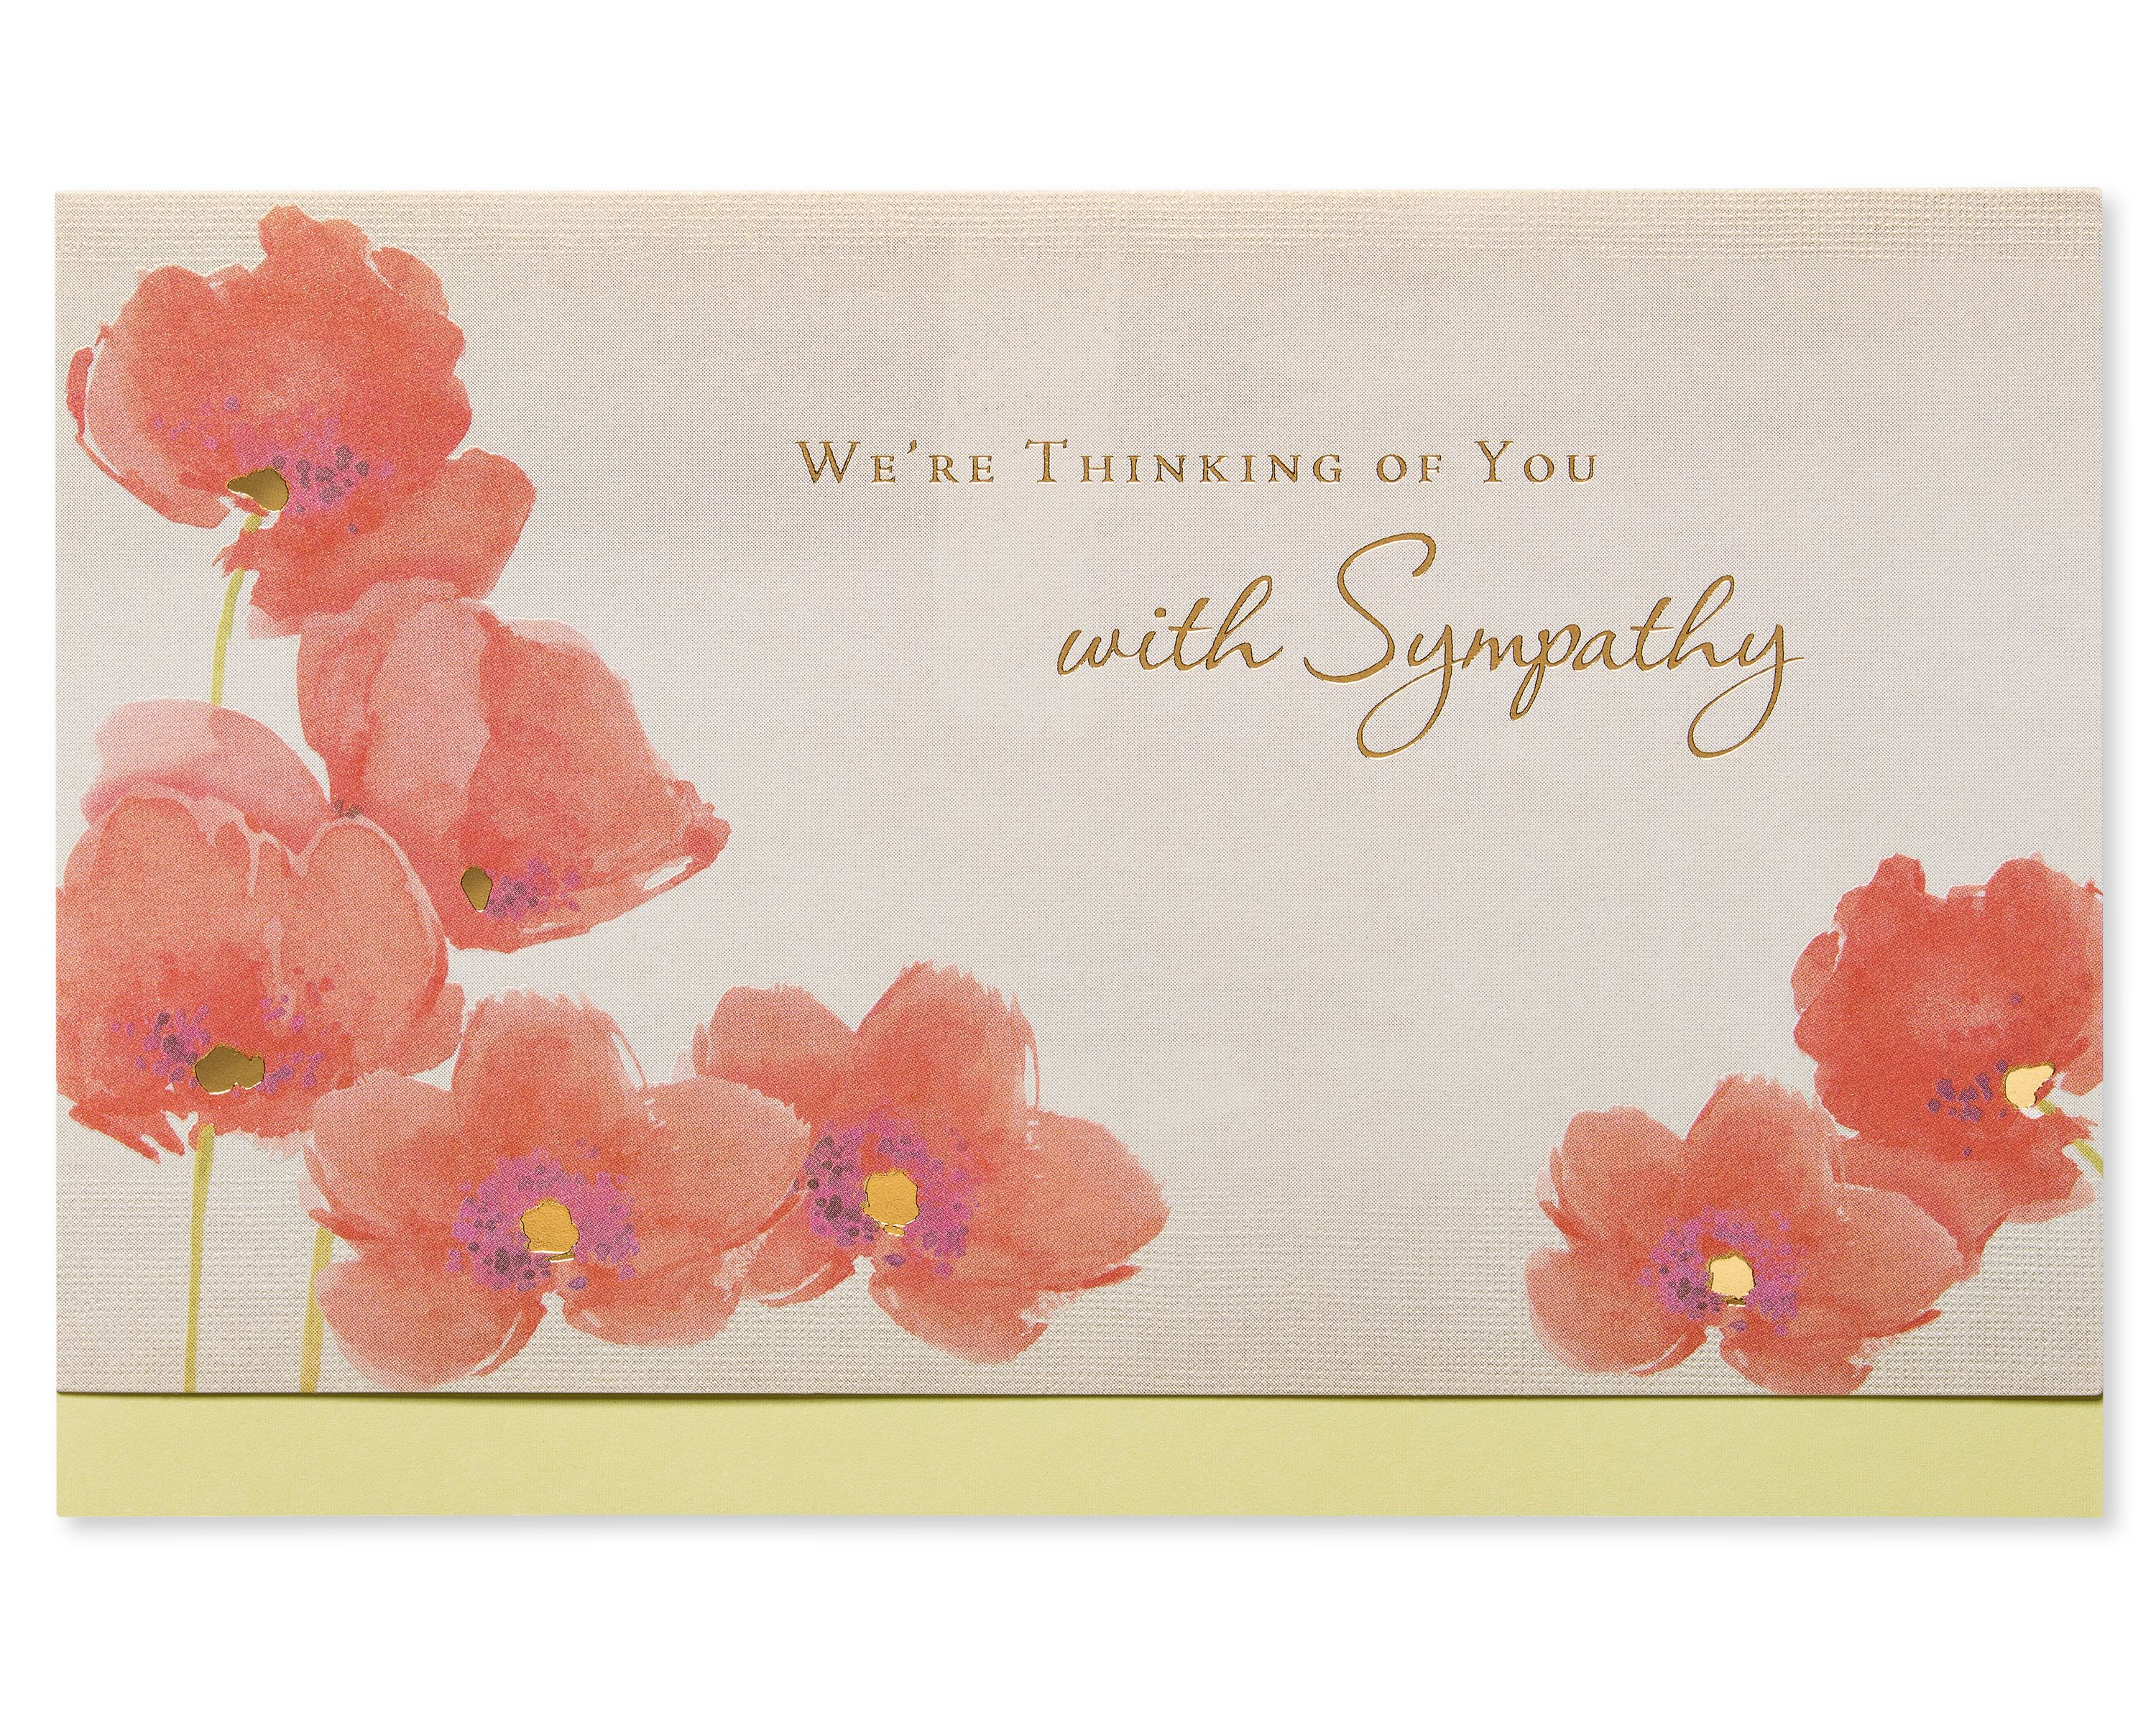 American Greetings Our Deepest Sympathy Card With Foil Walmart